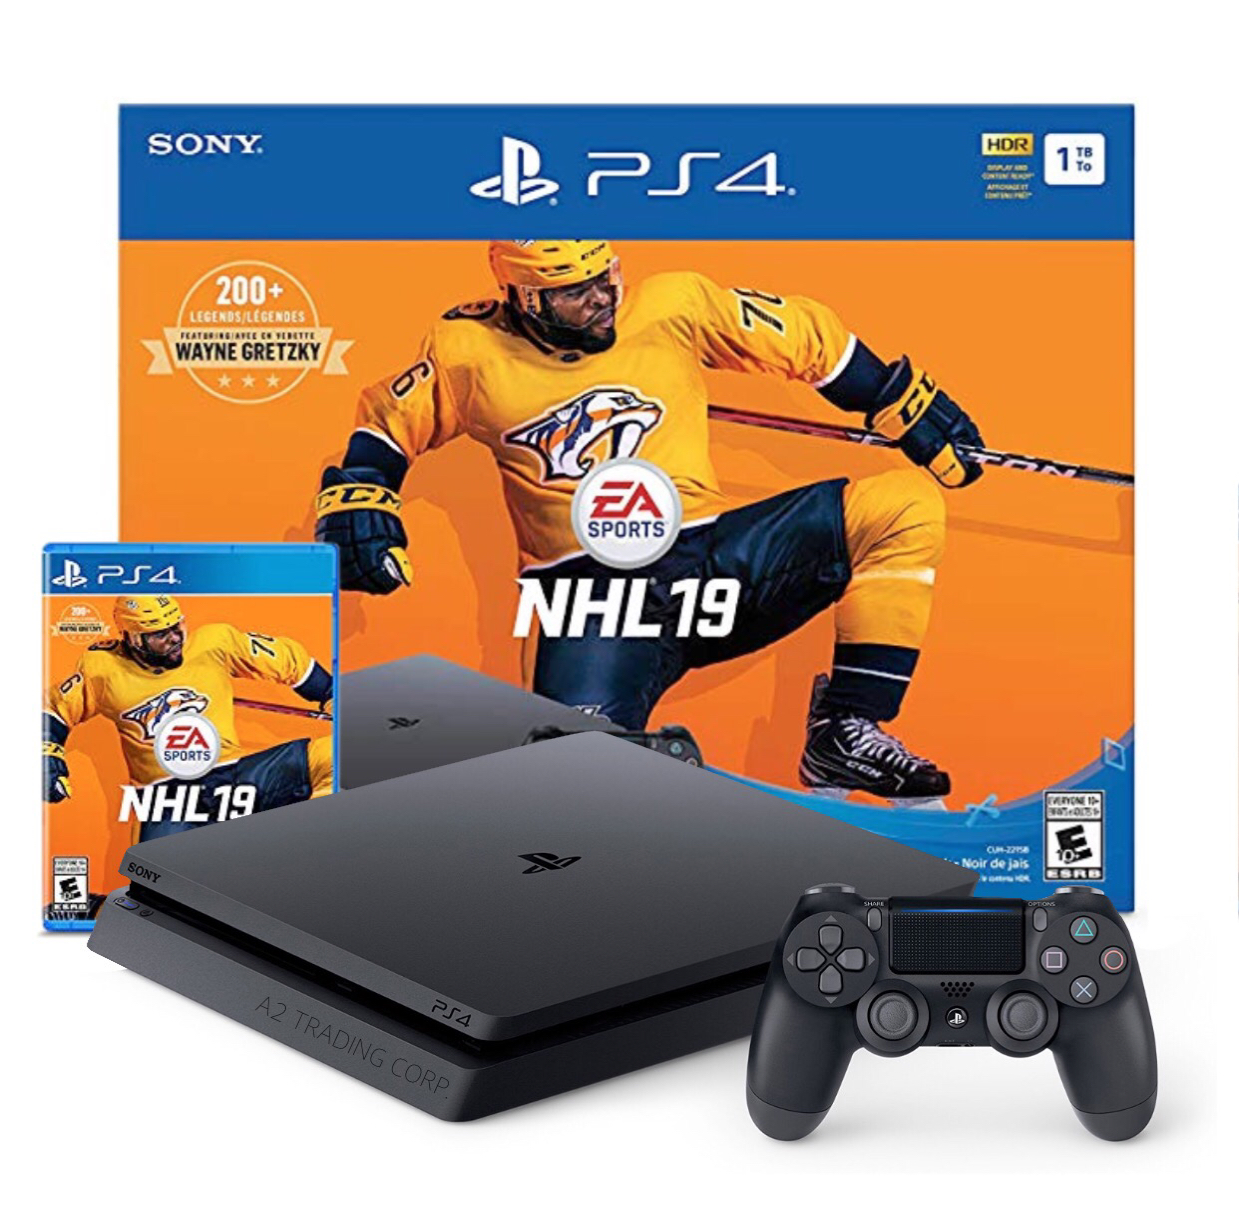 PS4 Slim 1TB NHL19 Bundle